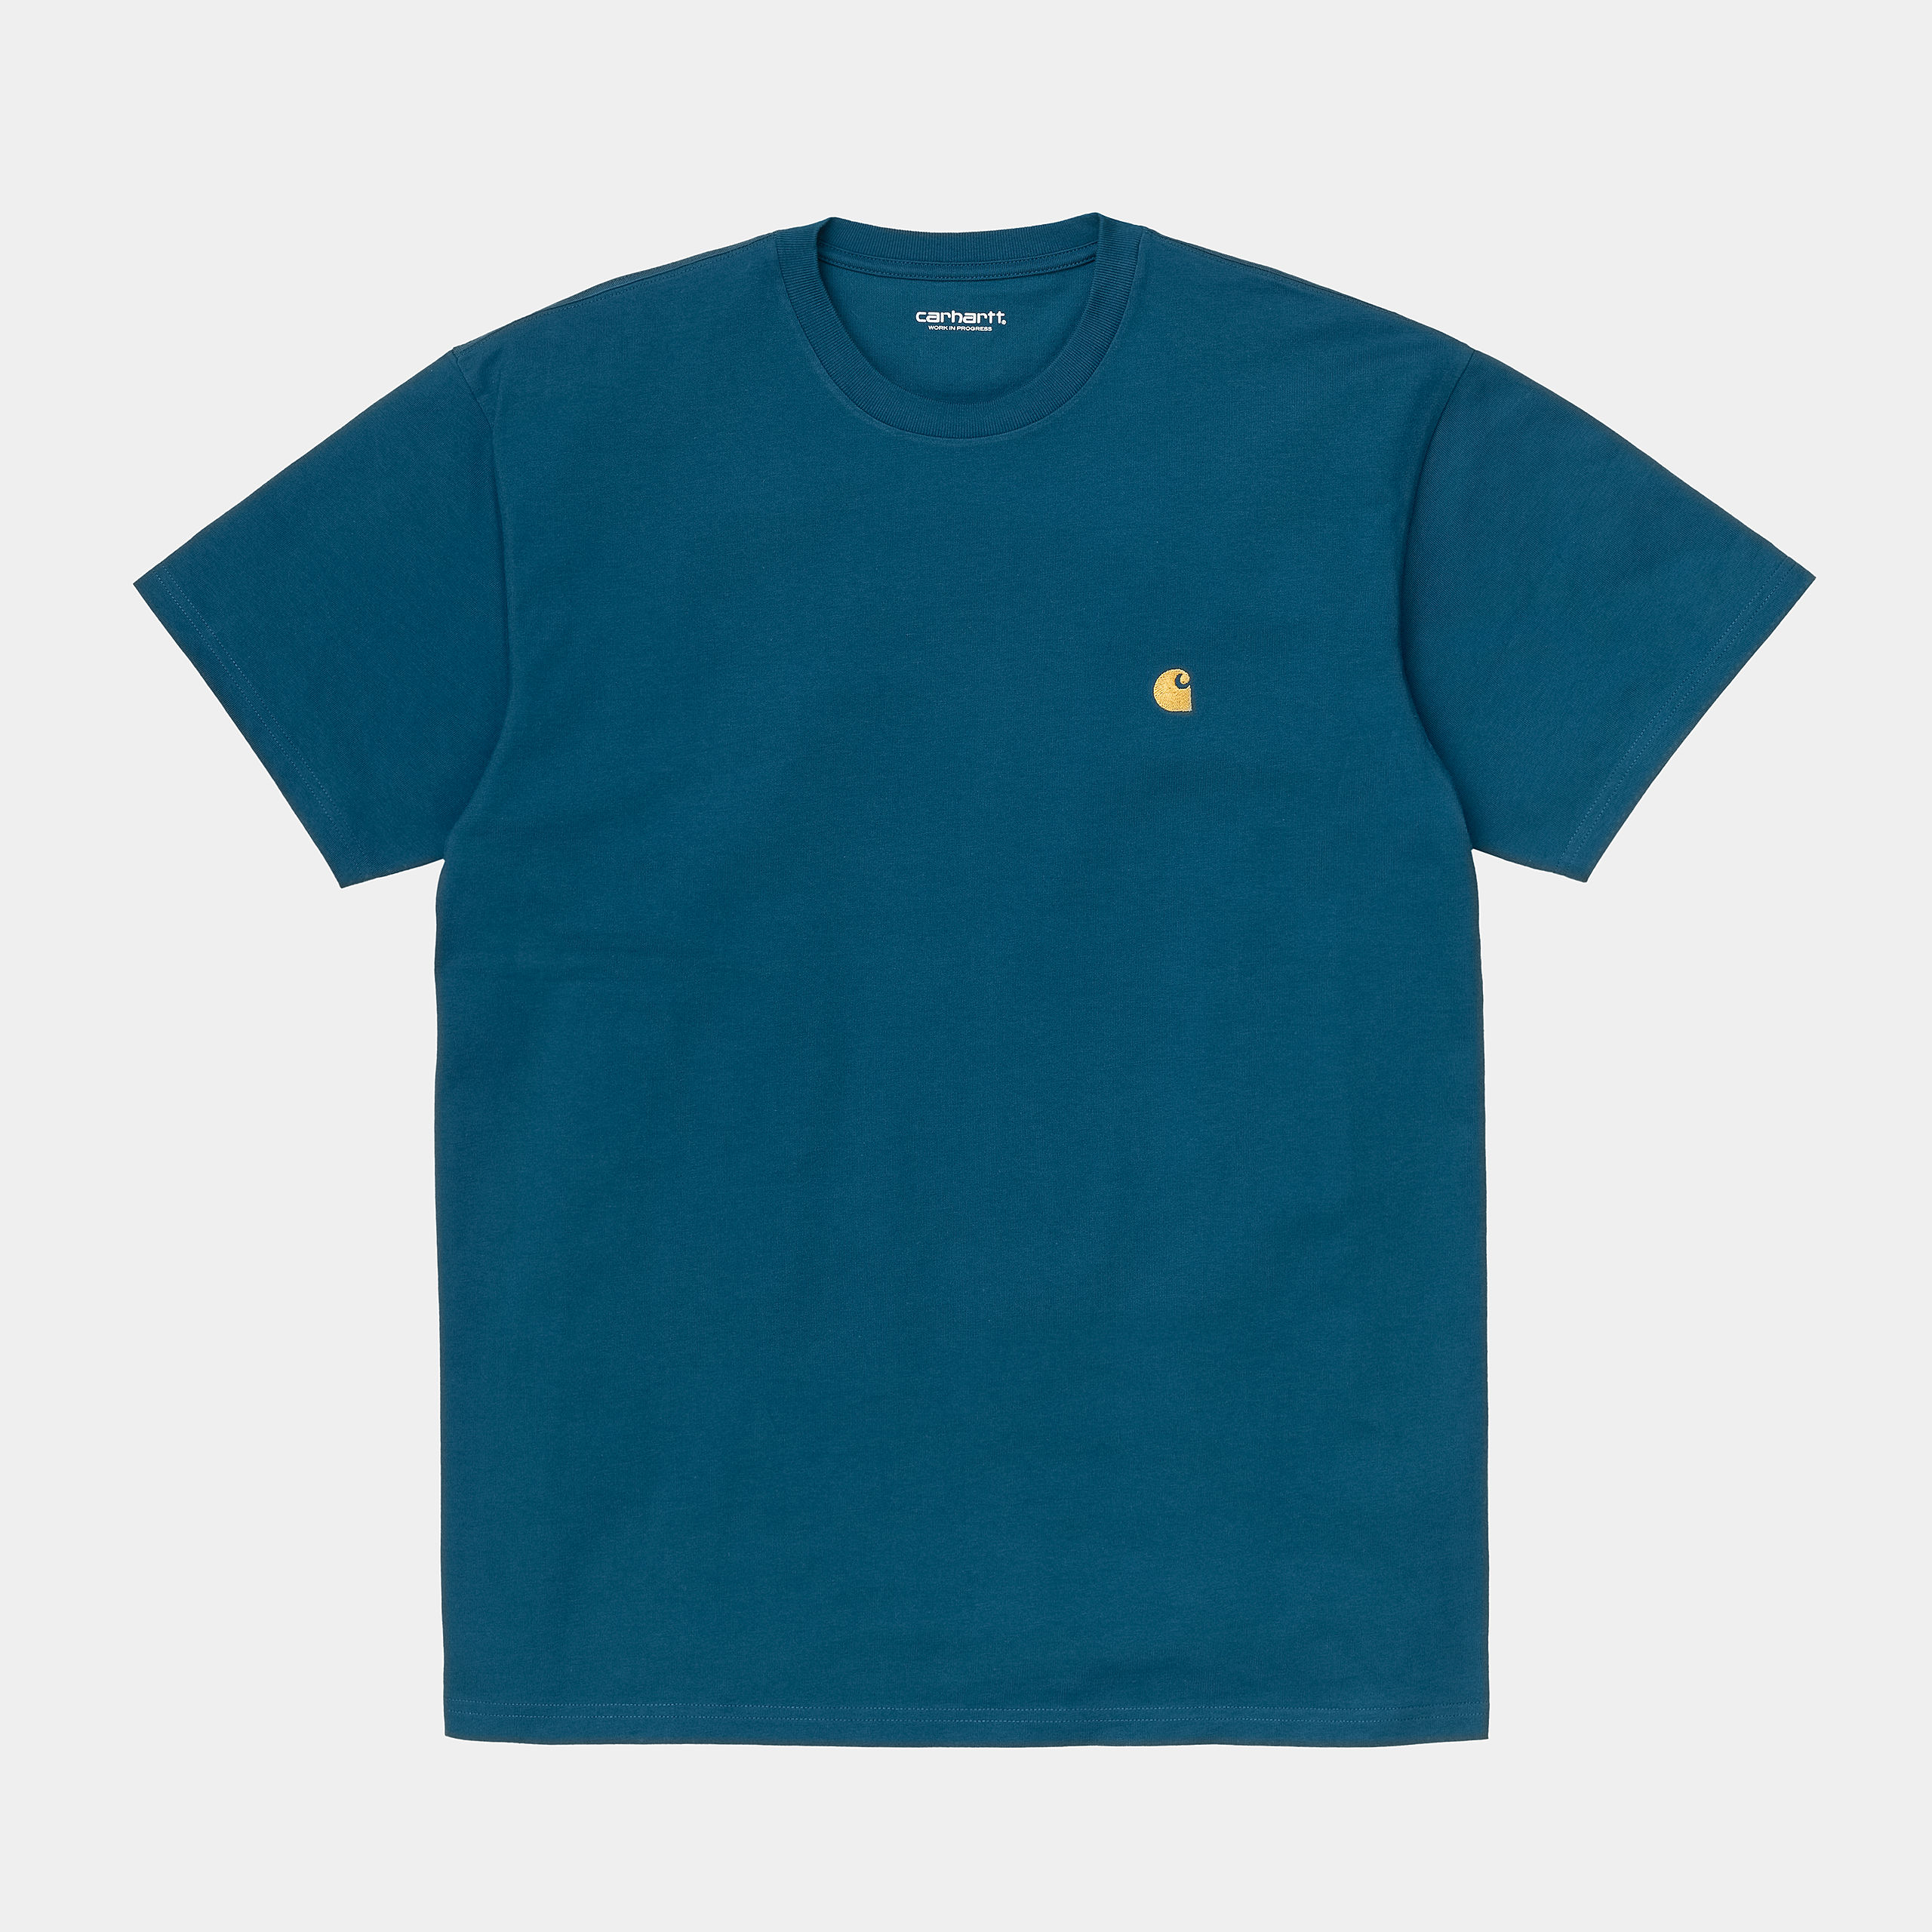 Carhartt WIP - CHASE T-SHIRT - Corse/Gold